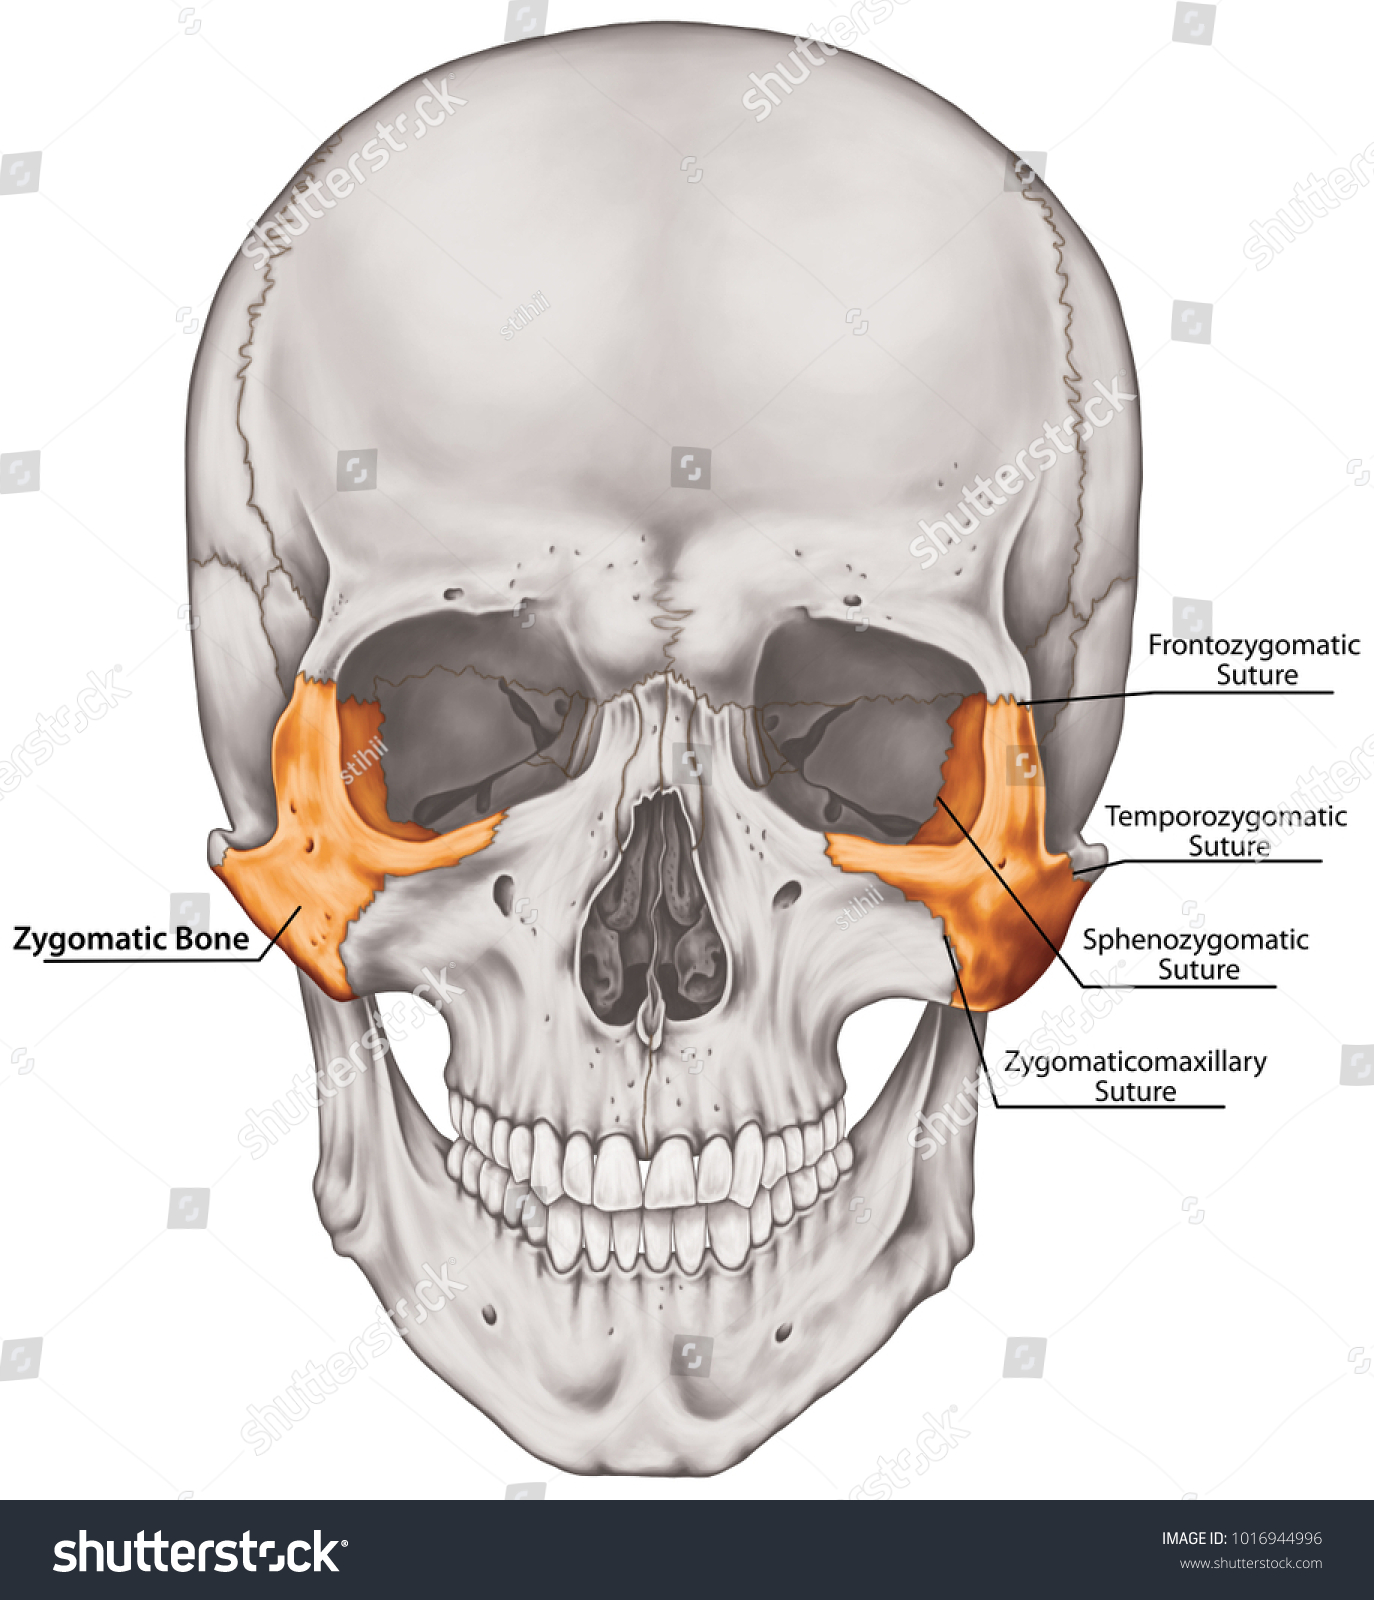 Zygomatic Bone Cranium Bones Head Skull Stock Illustration Royalty